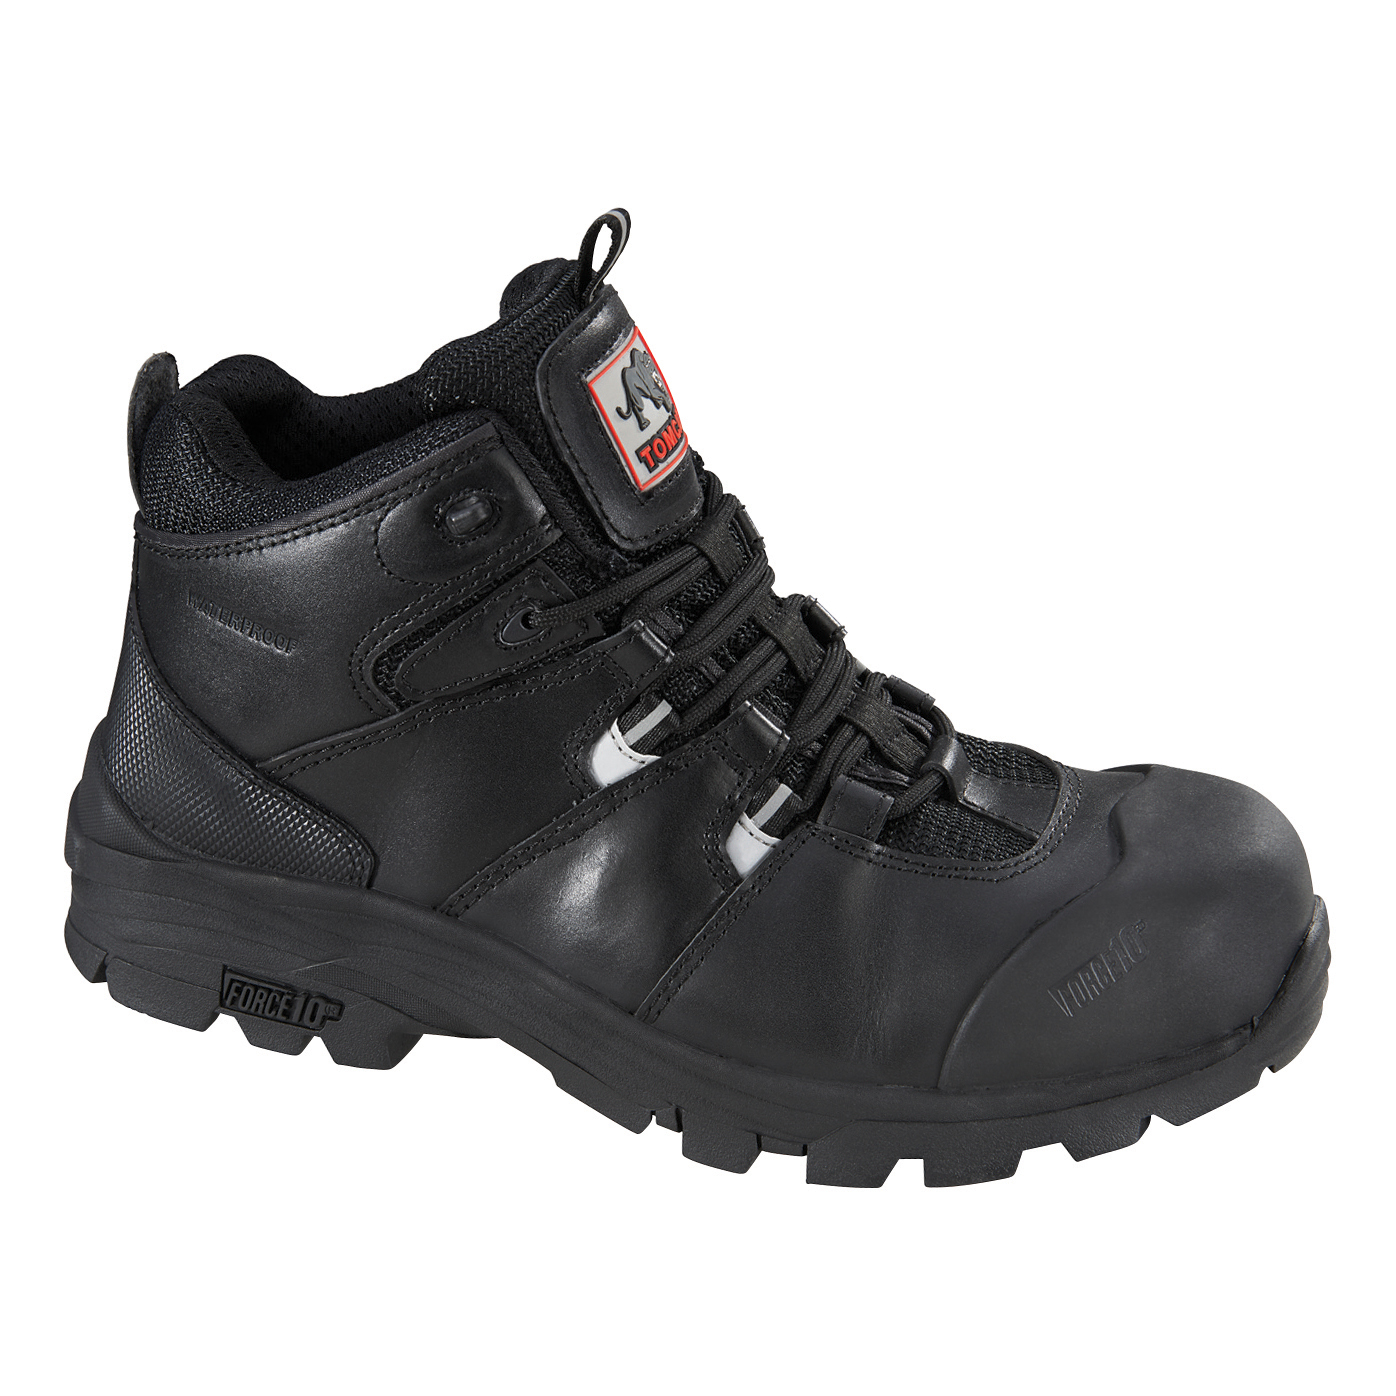 Rockfall Peakmoor Hiker Boot 100% Non-Metallic F/Glass Toecap Size 10 Blk Ref TC4200-10 5-7 Day L/Time